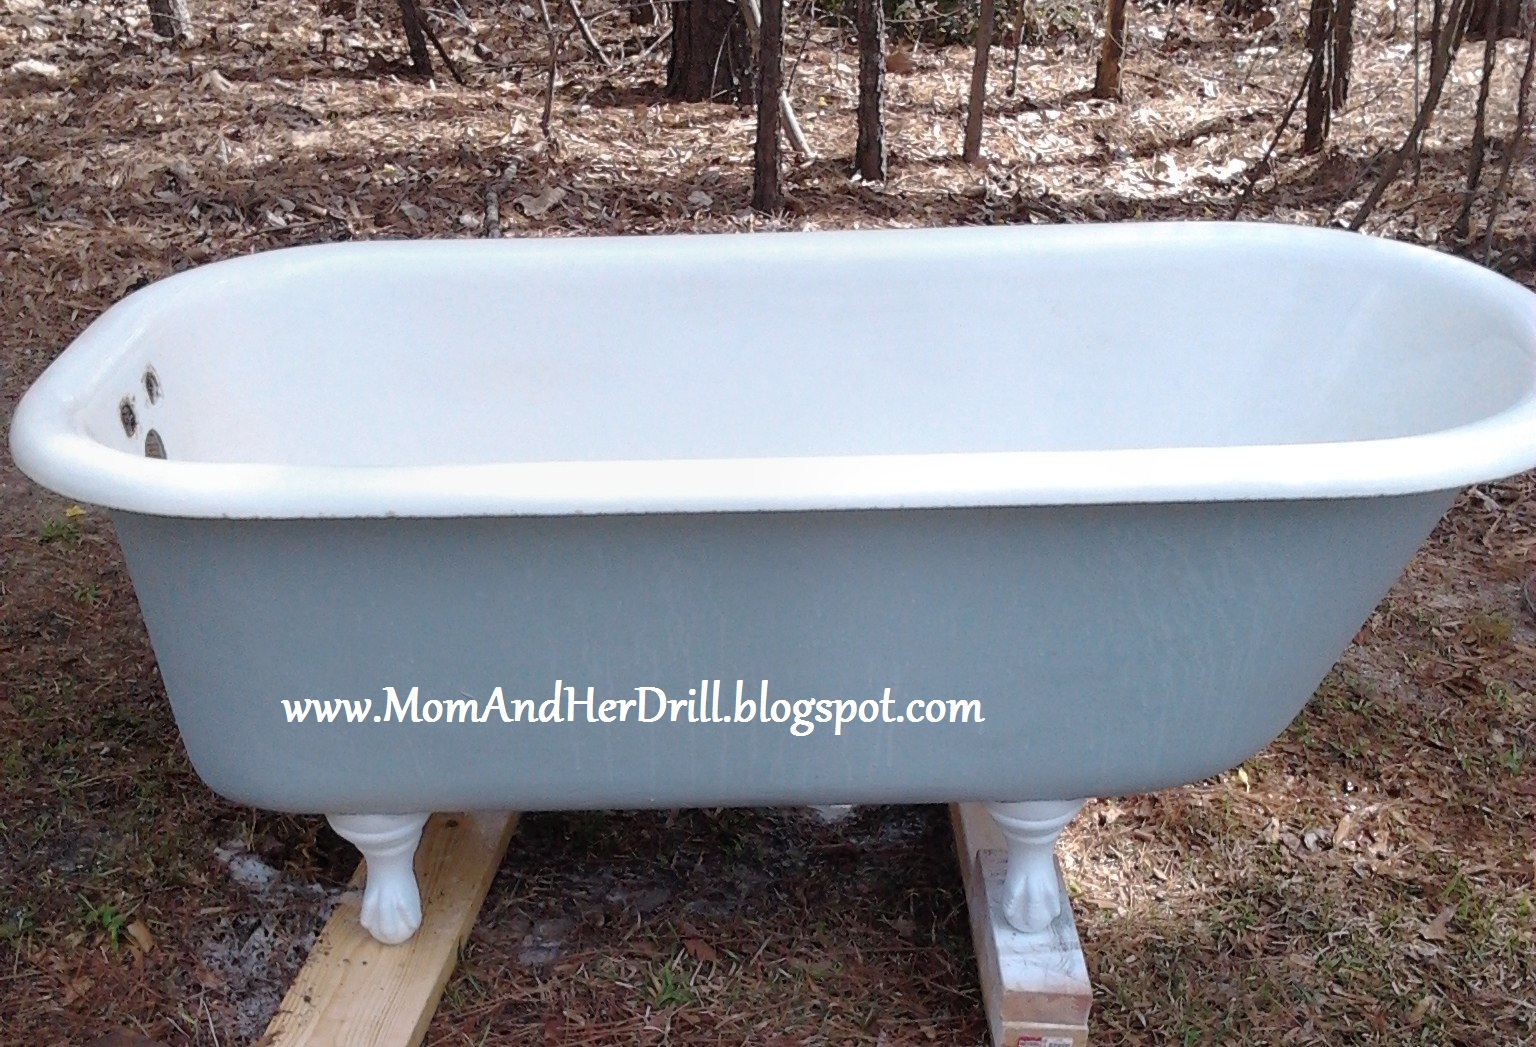 Refinishing the Porcelain Tub & Sinks: The bottle that fixed ...